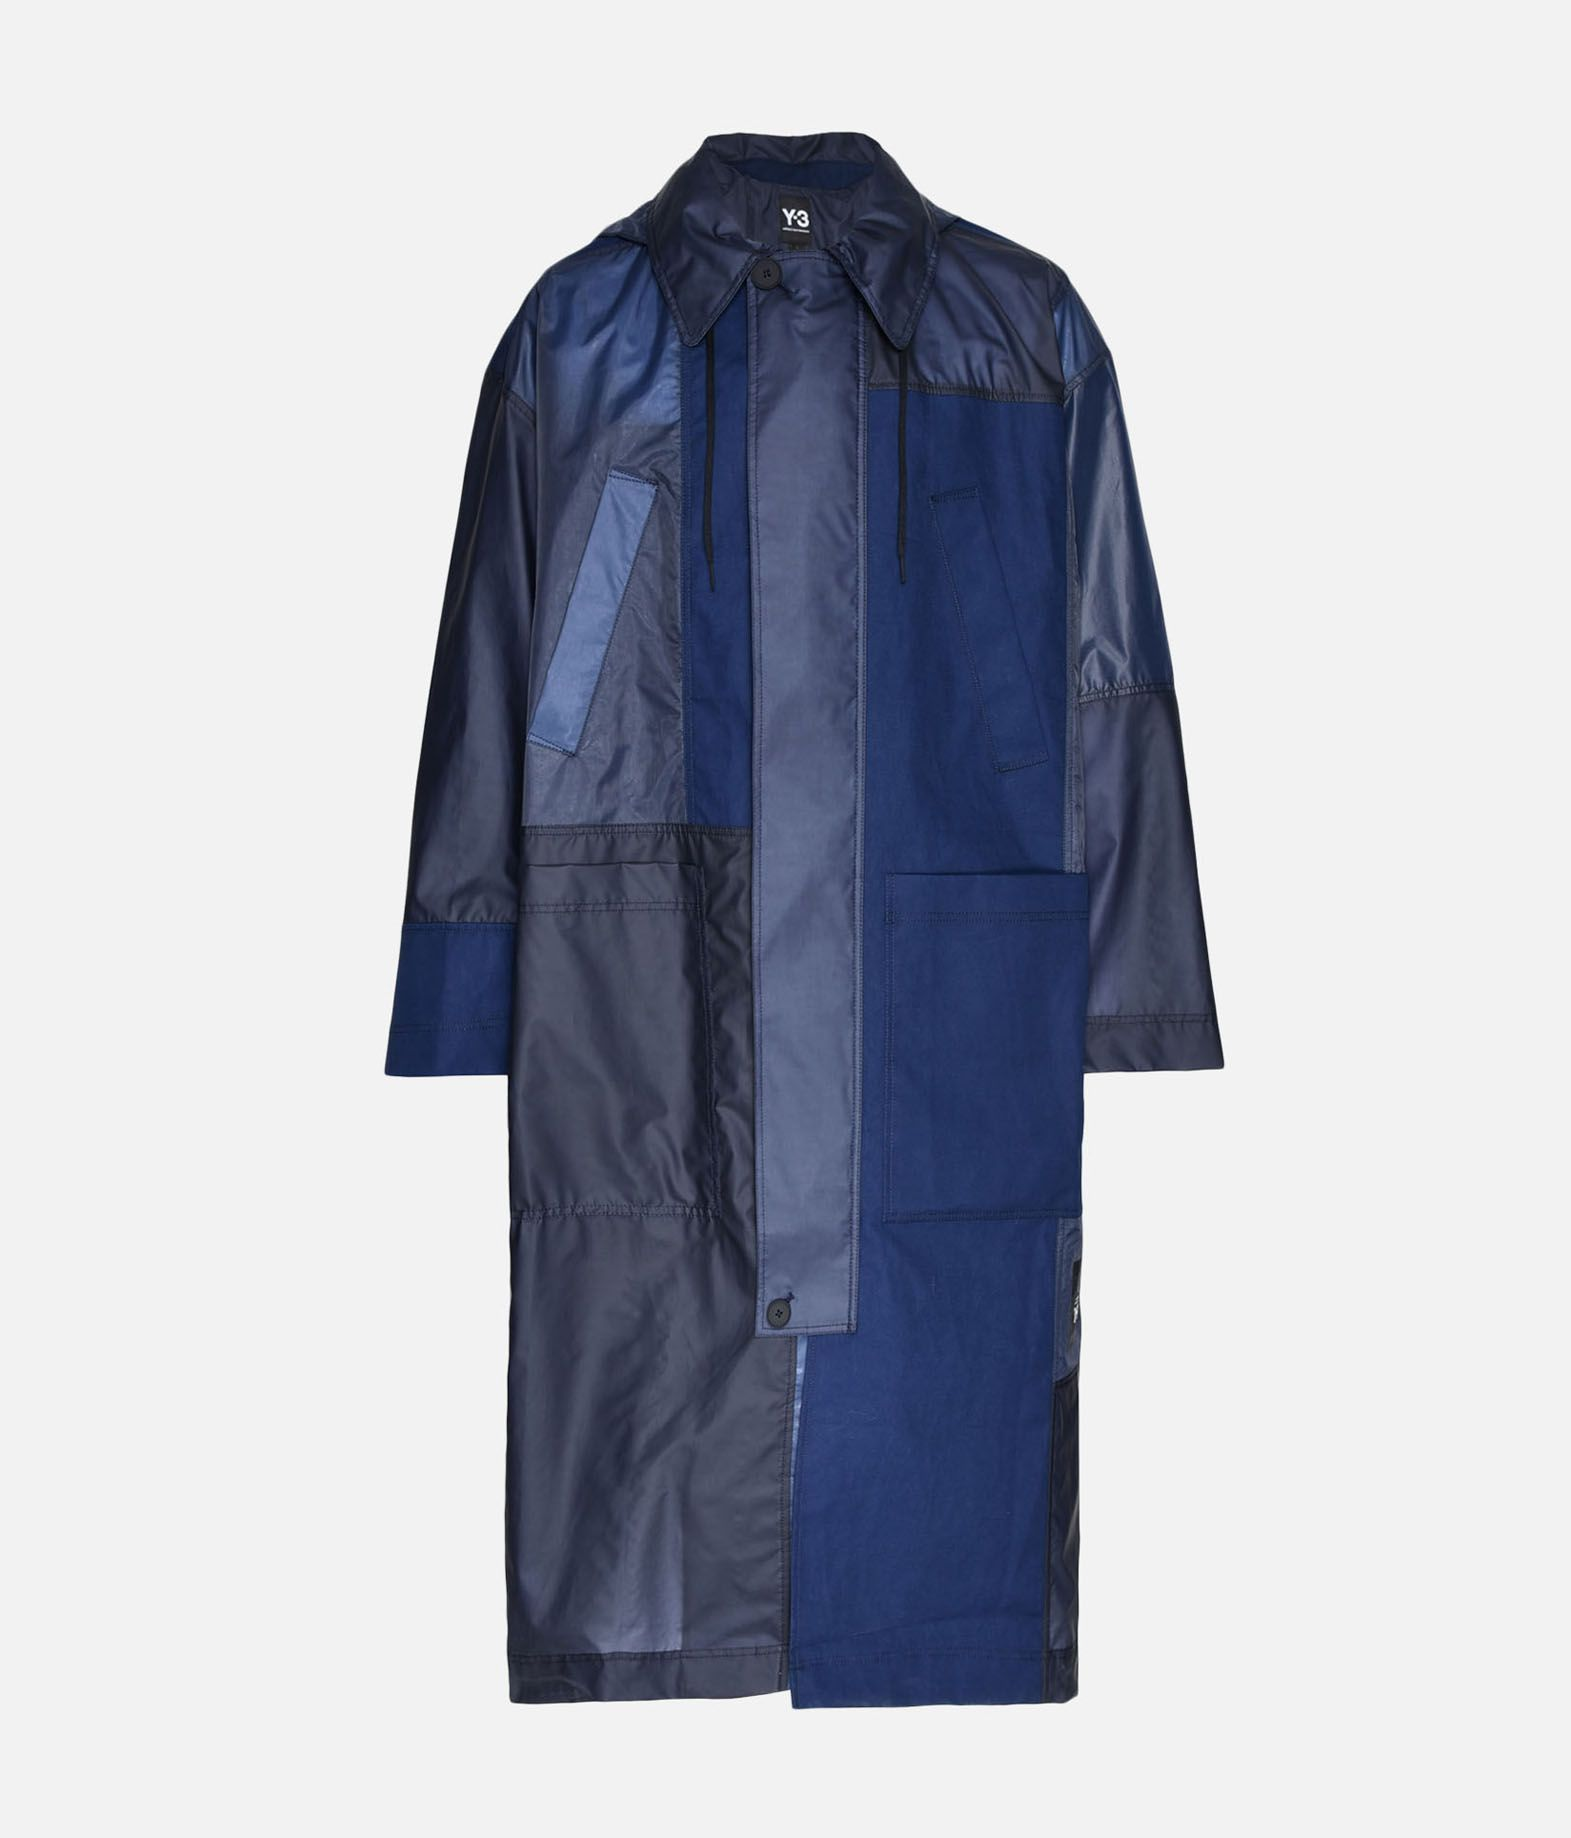 Y-3 Y-3 Patchwork Long Coat Cappotto Uomo f